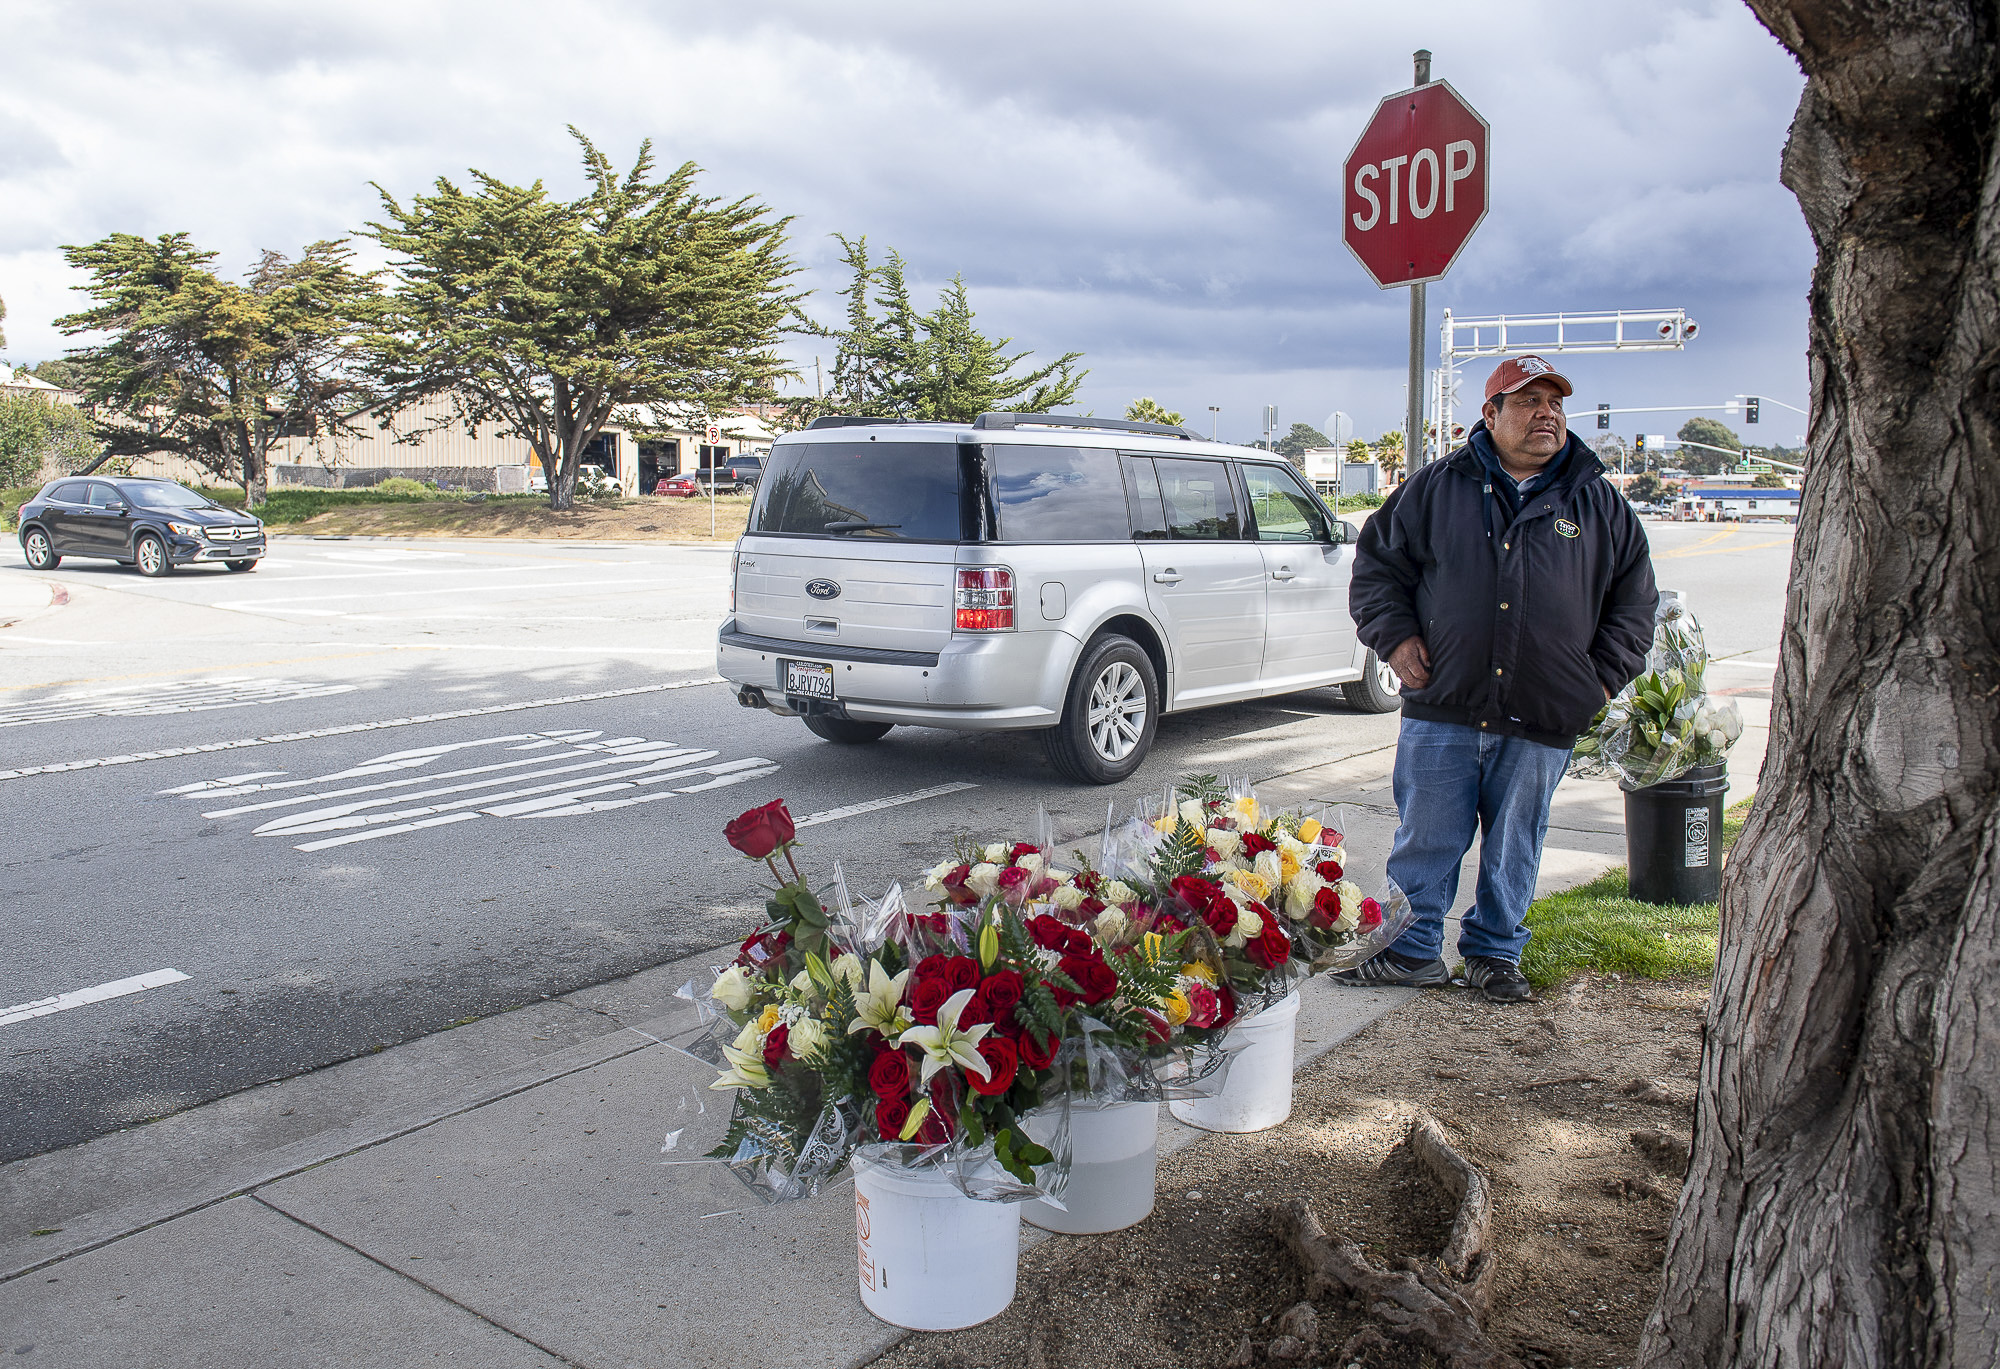 Isidoro Contreras Flores, sells an arrangnment of flowers in Seaside, Calif, on Tuesday, March 17, 2020. Photo by David Rodriguez, The Salinas Californian